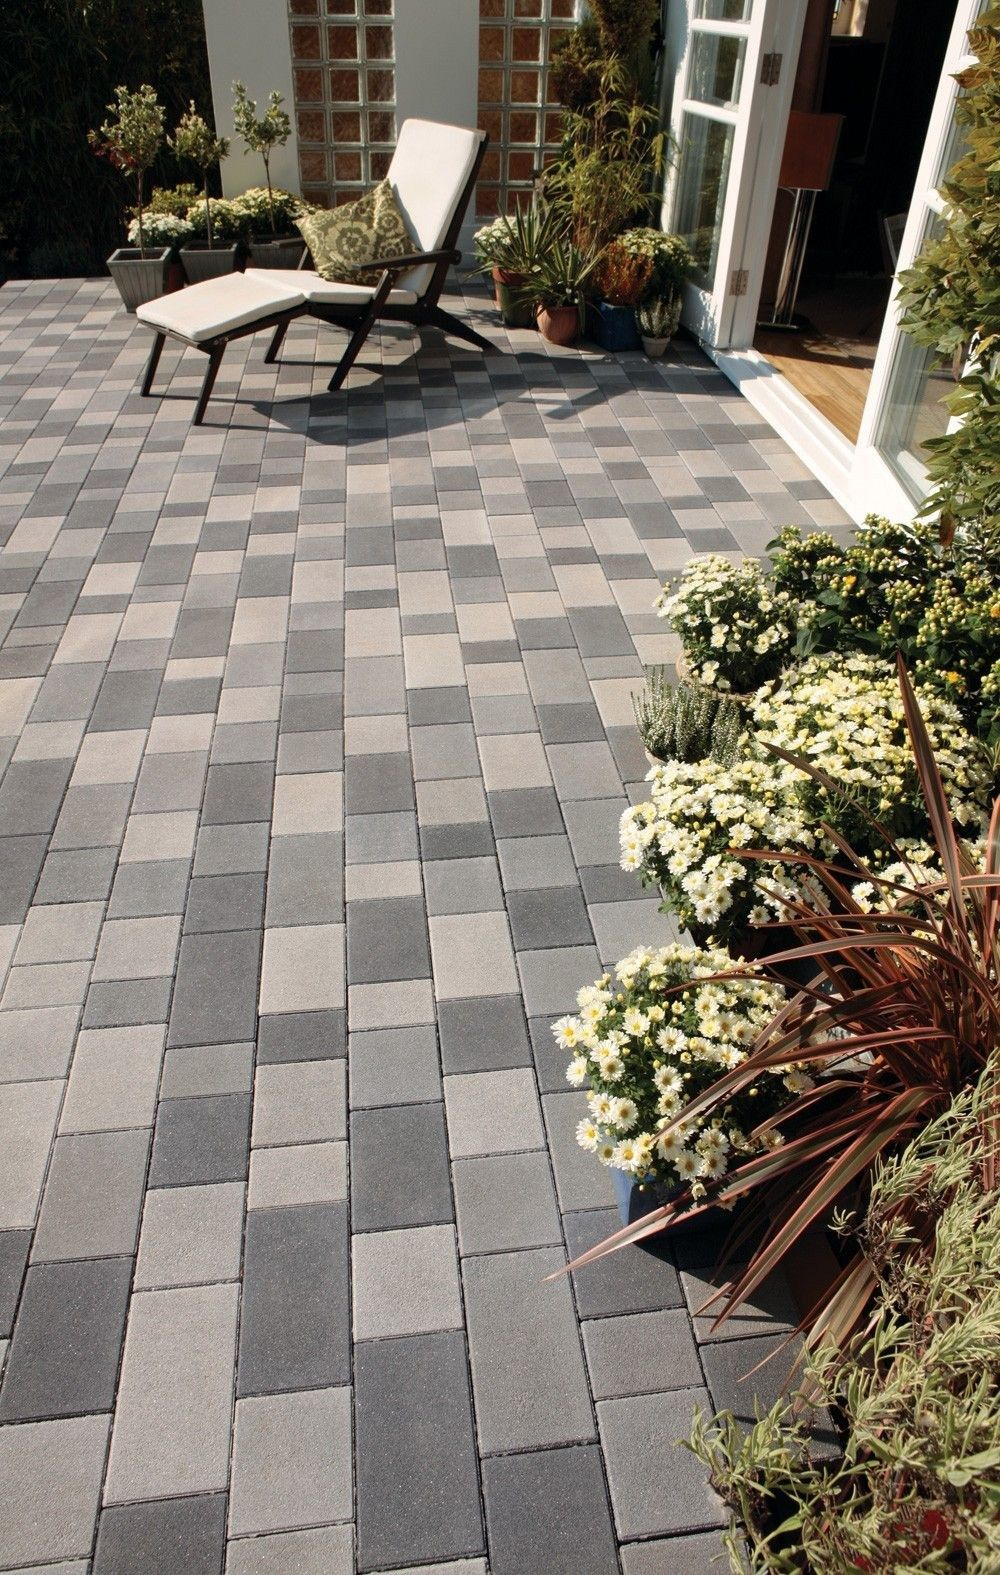 21 Stunning Picture Collection For Paving Ideas Driveway Ideas Within 10 Garden Paving Ideas Incredible And Also Gorgeous Garden Paving Backyard Landscaping Designs Patio Garden